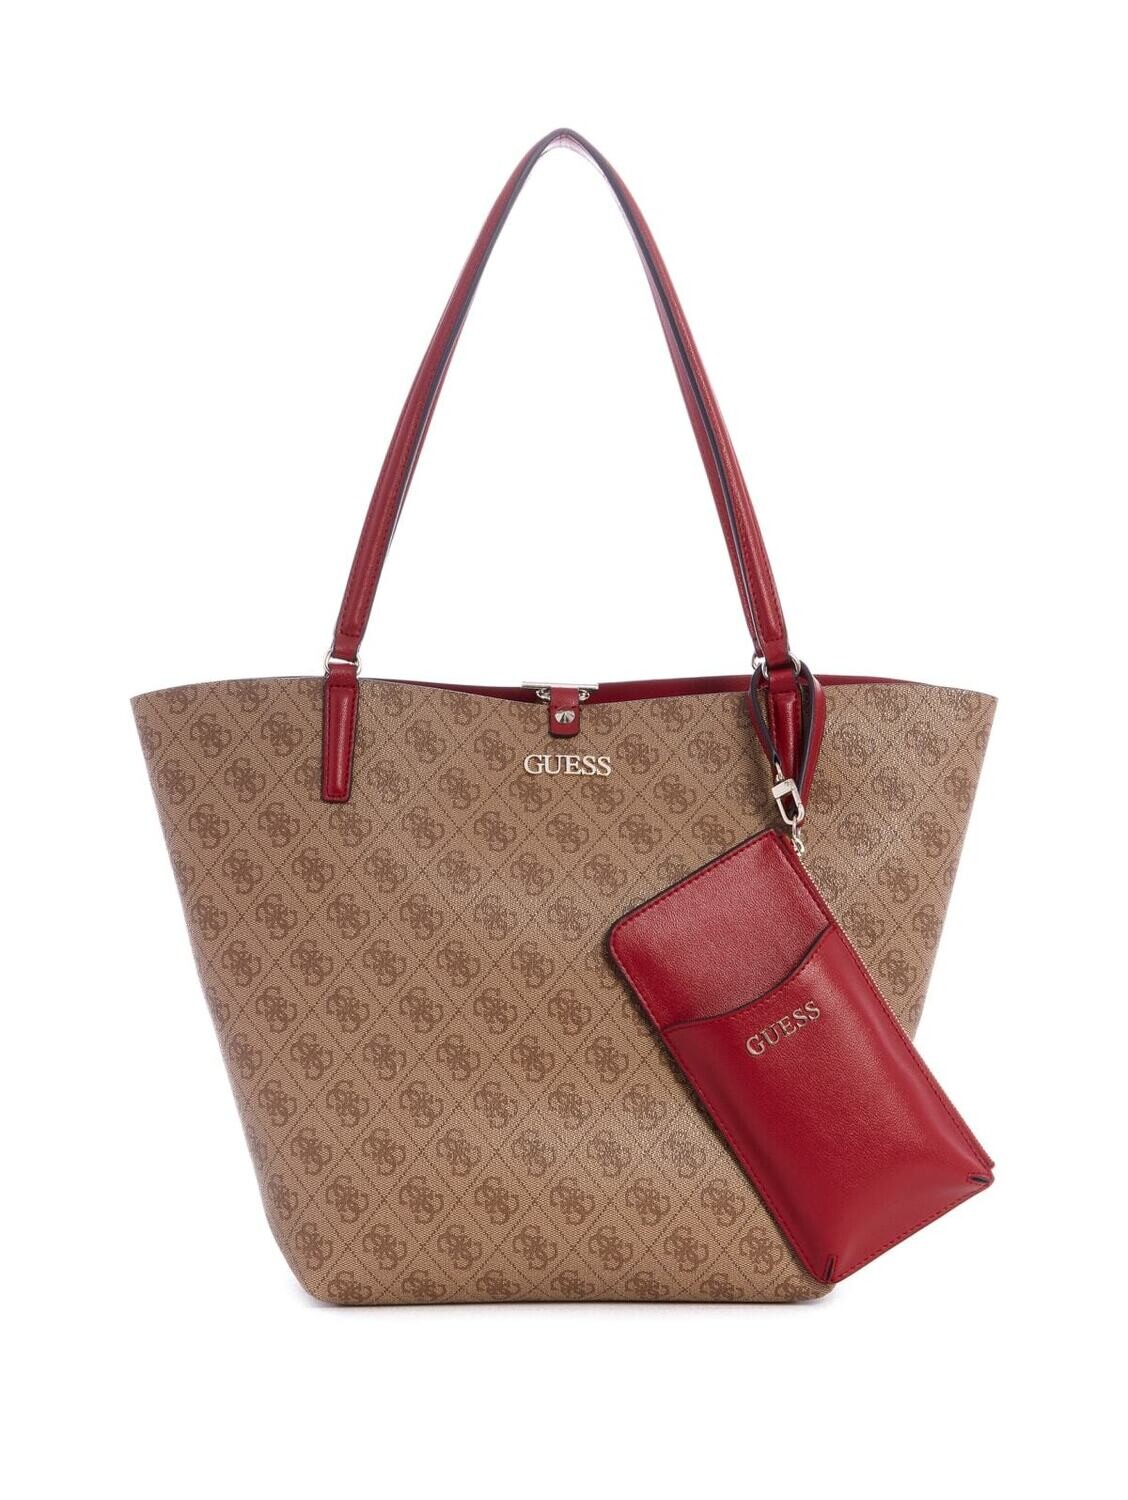 GUESS ALBY TOGGLE TOTE BROWN RED